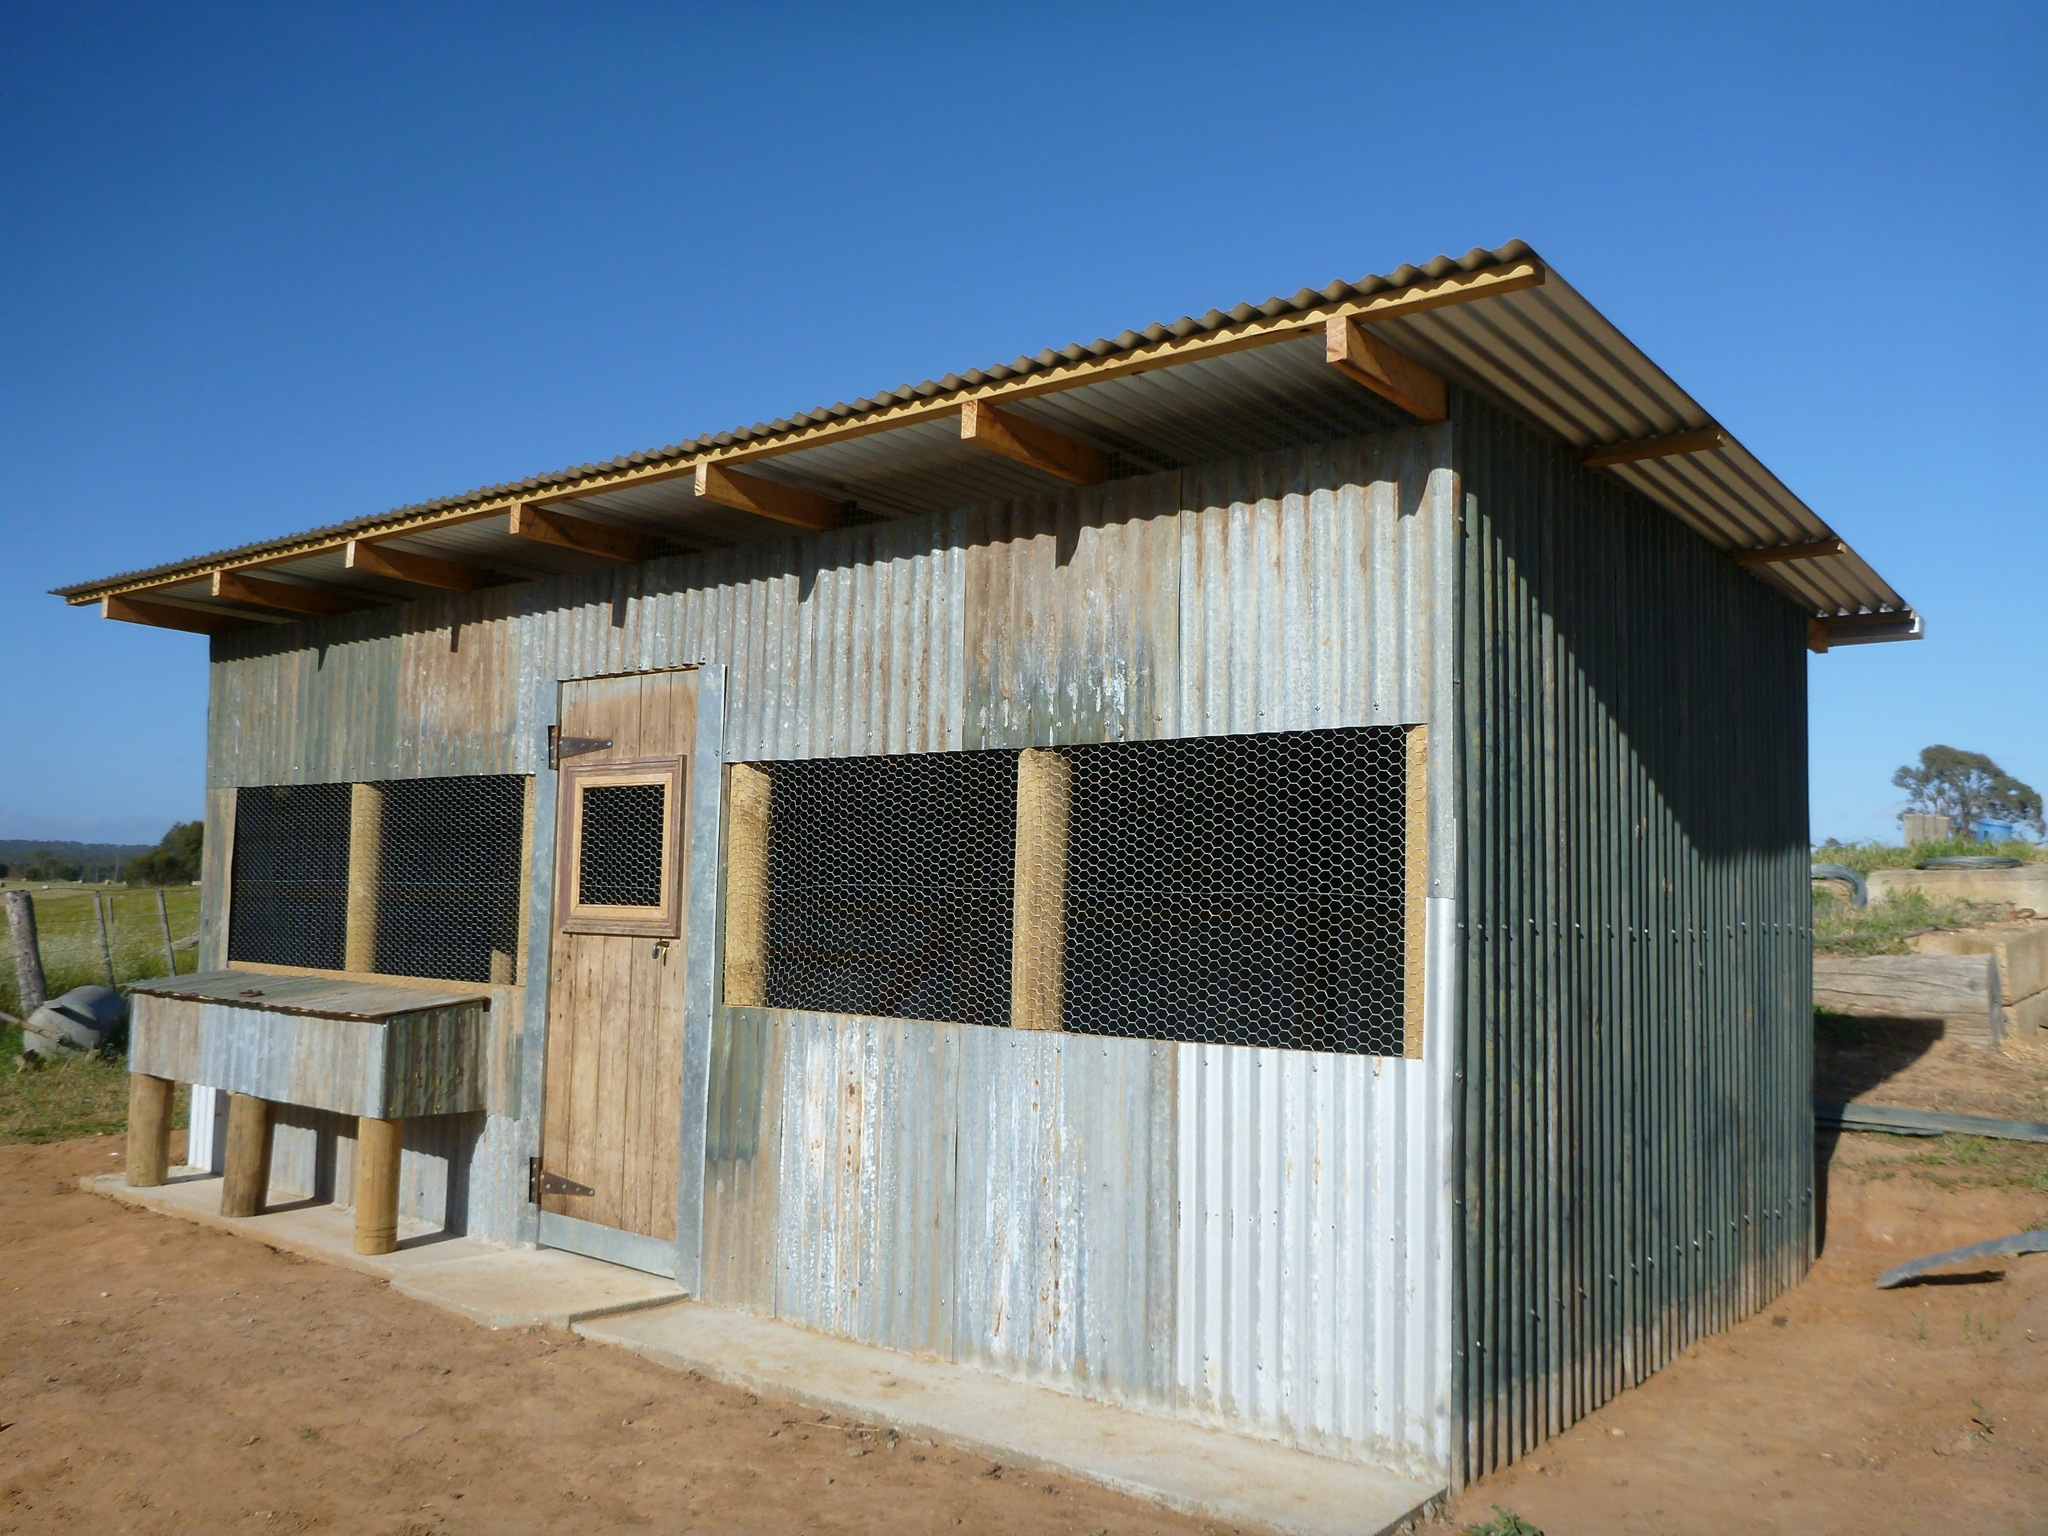 5 Solid Ways To Protect Chook Sheds And Bird Aviaries From Predators